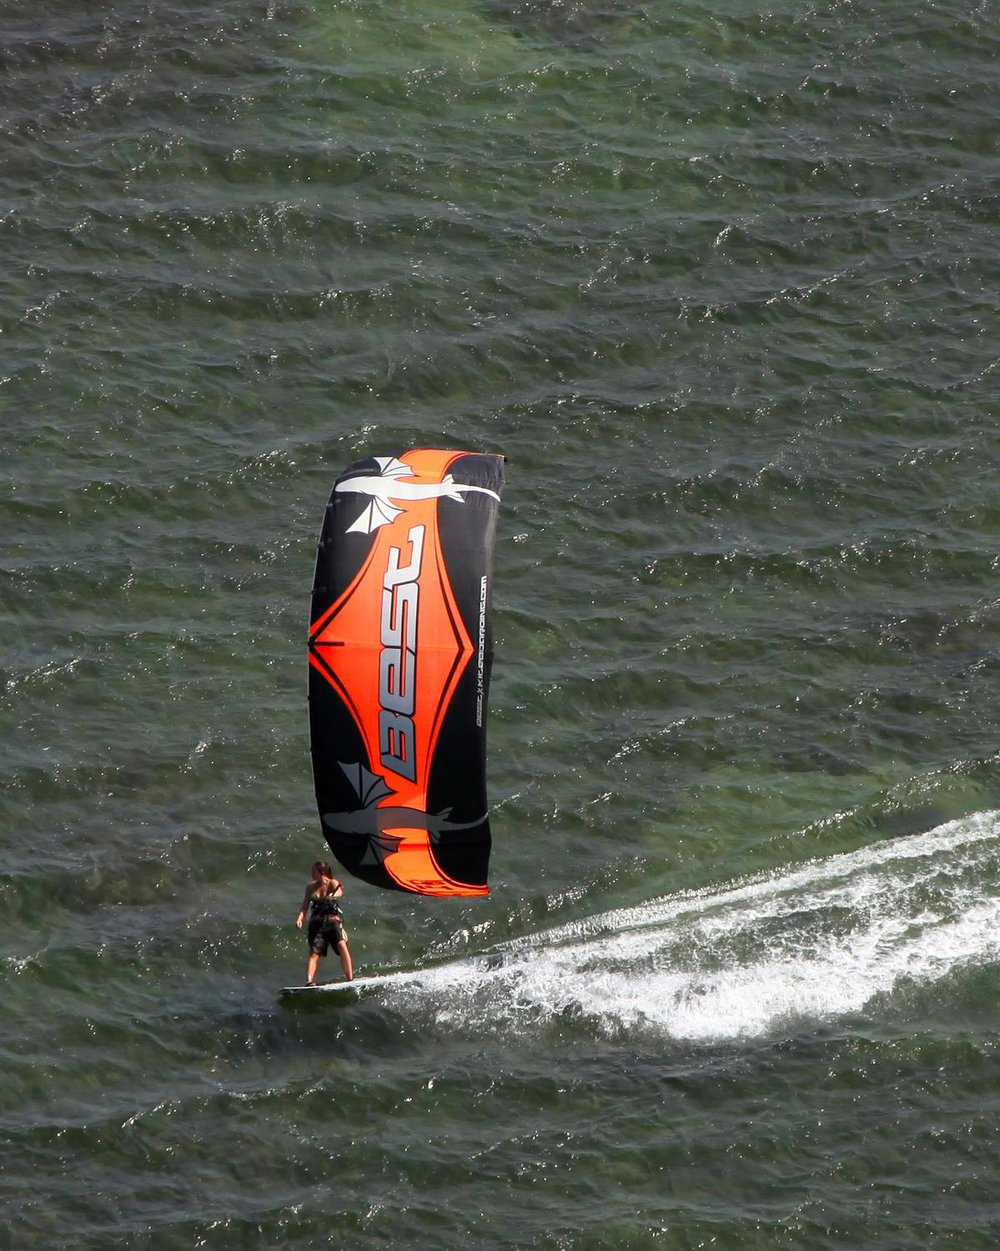 Kite Boarding at South Padre Island, Harlingen, Texas - Harlingen Aerial Photographer - Aerial Drone Image - Aerial Drone Video - Harlingen, TX - Rio Grande Valley, Texas